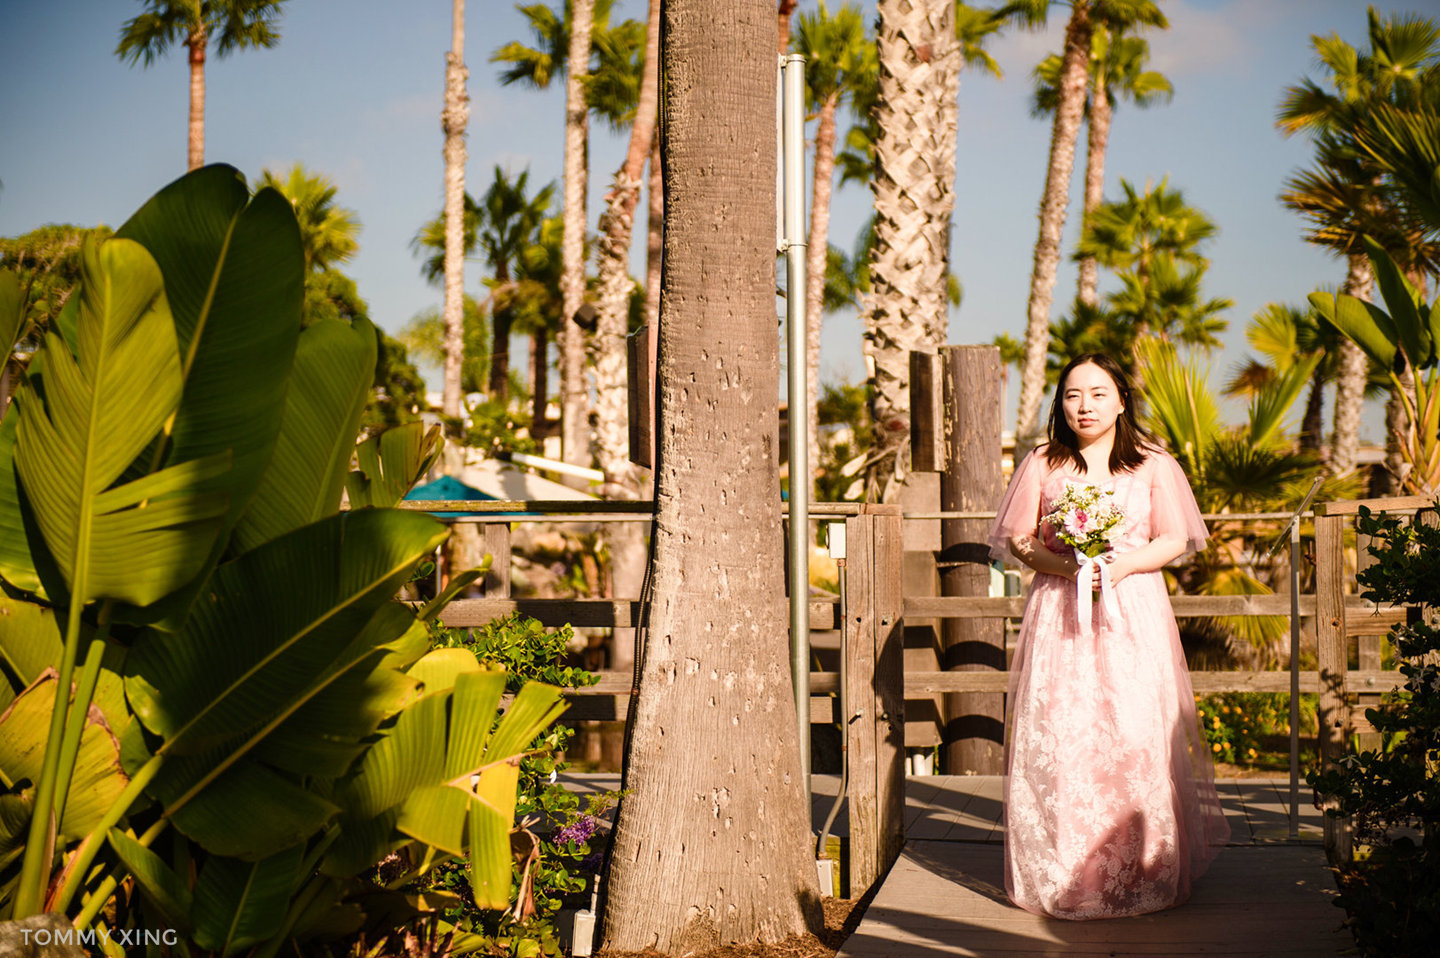 Paradise Point Resort Wedding Xiaolu & Bin San Diego 圣地亚哥婚礼摄影跟拍 Tommy Xing Photography 洛杉矶婚礼婚纱照摄影师 093.jpg